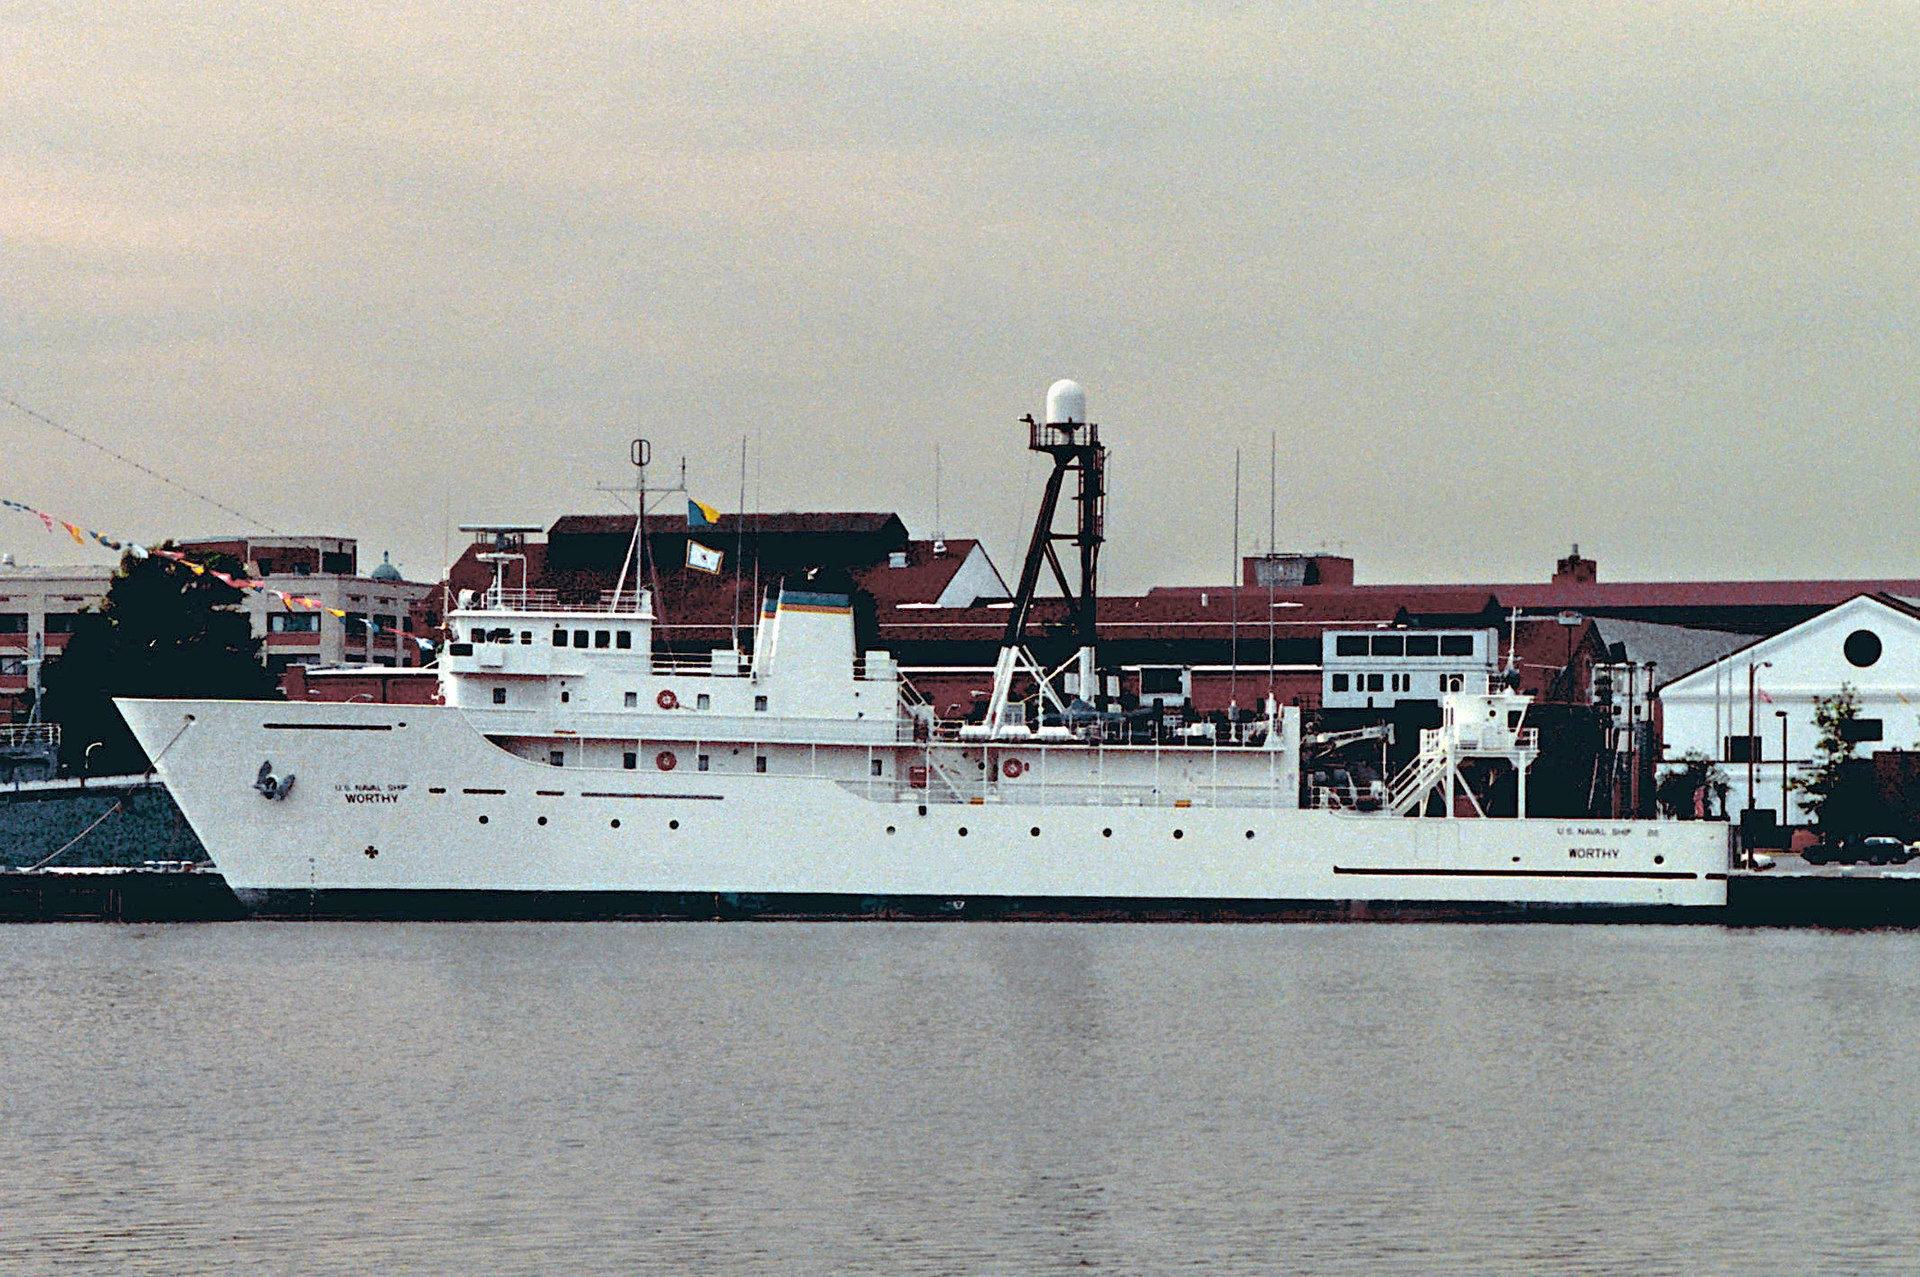 USNS Worthy  T AGOS 14 on general electric instrumentation